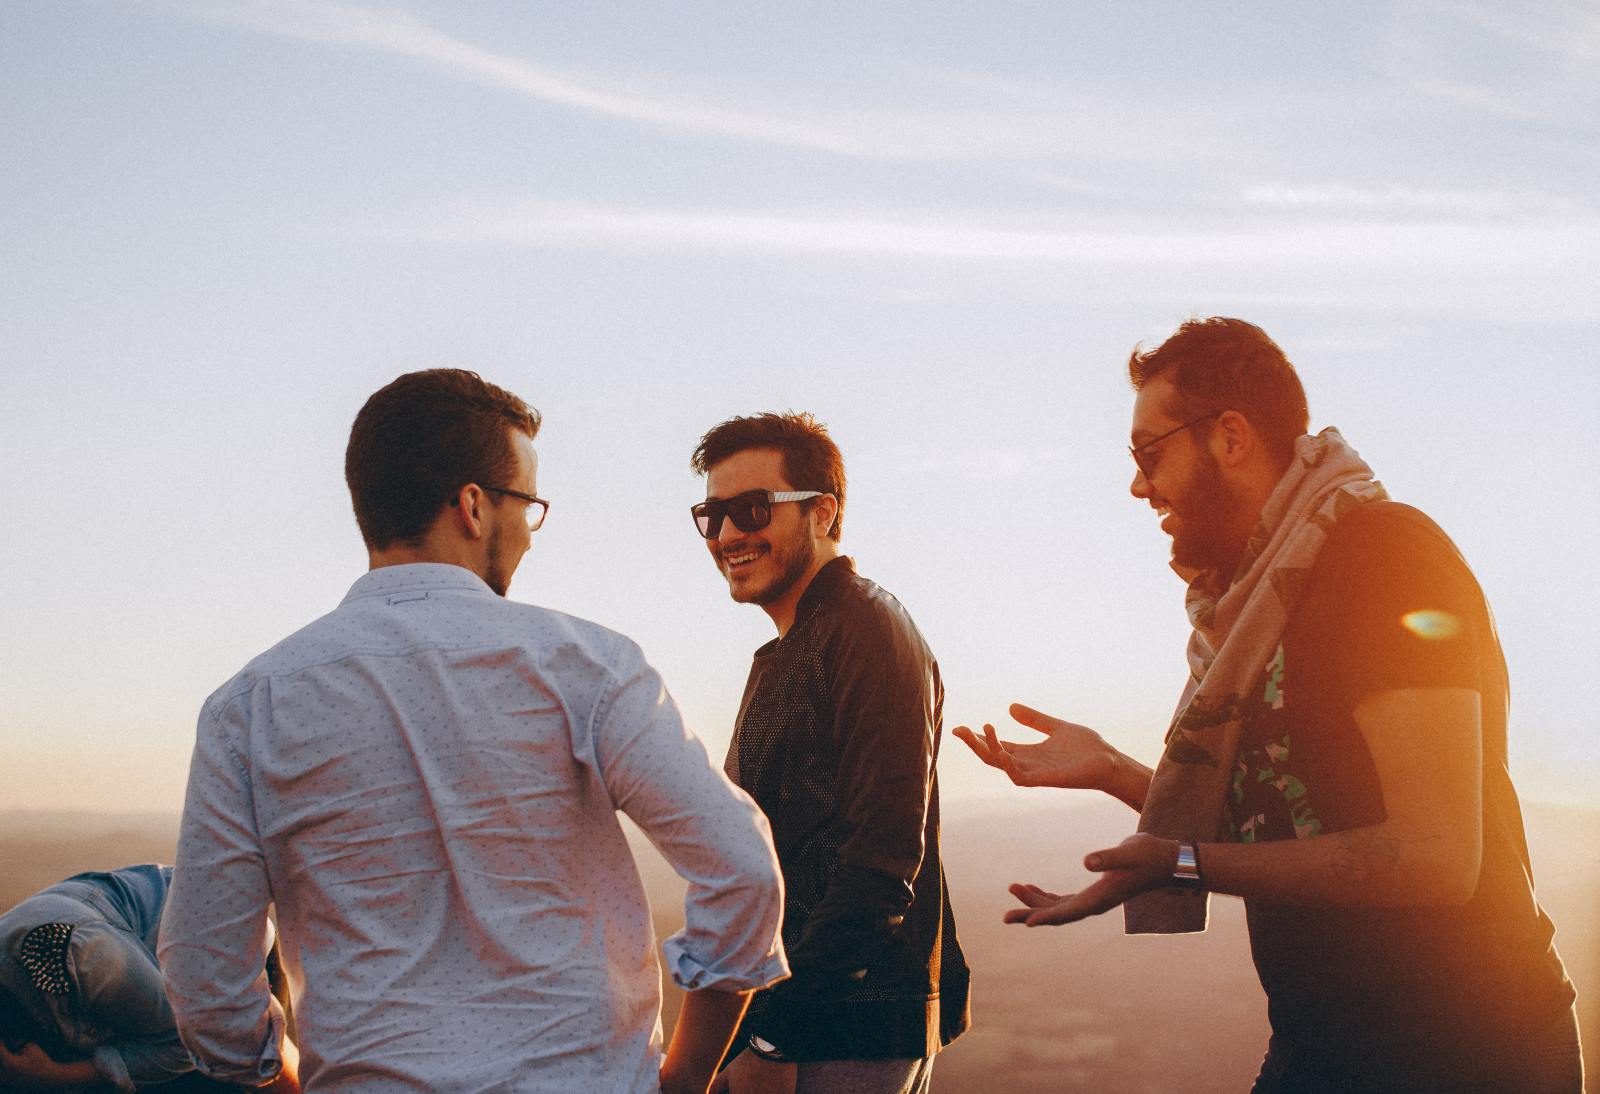 Group of young men laughing and joking on a beach